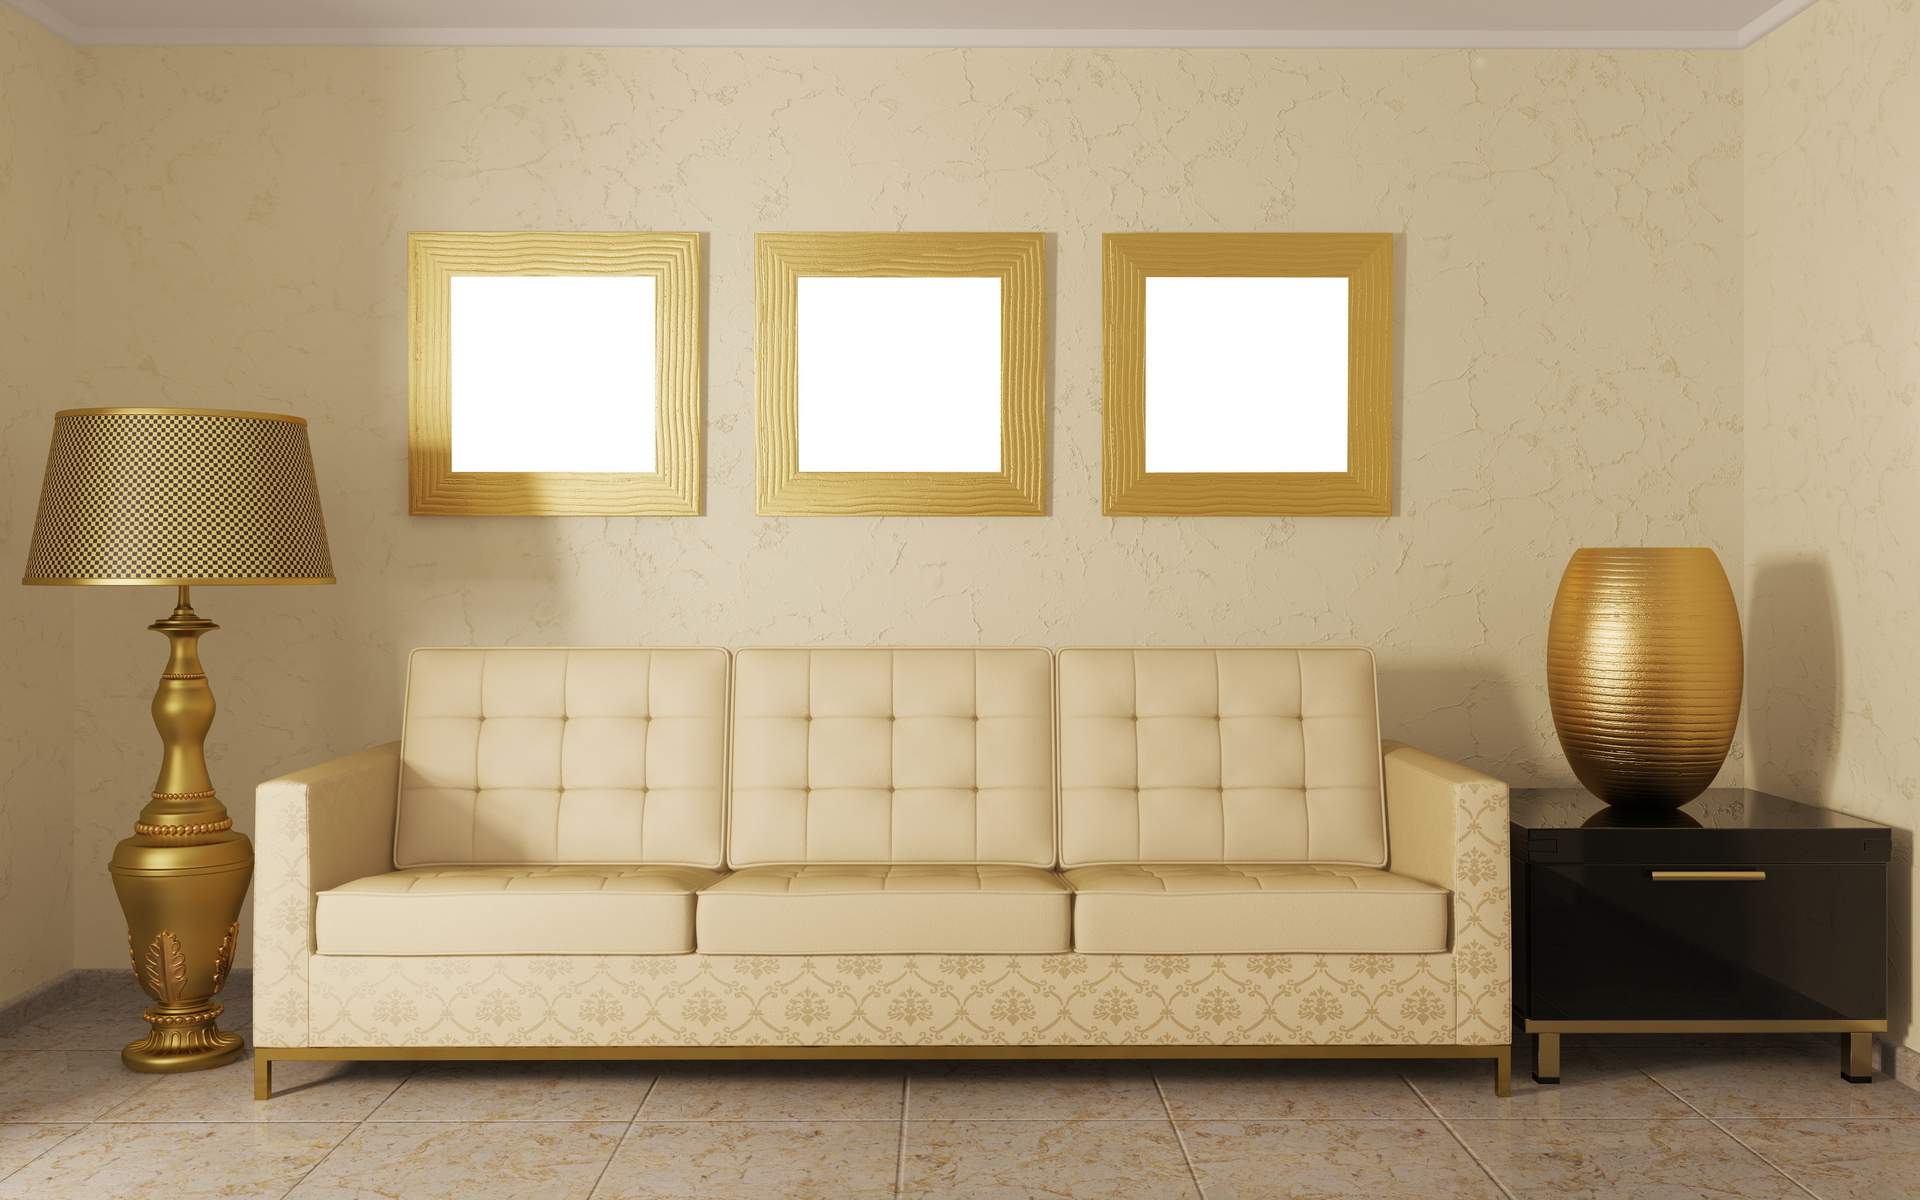 Interior Design Room Sofa And Pillows Wallpapers ...